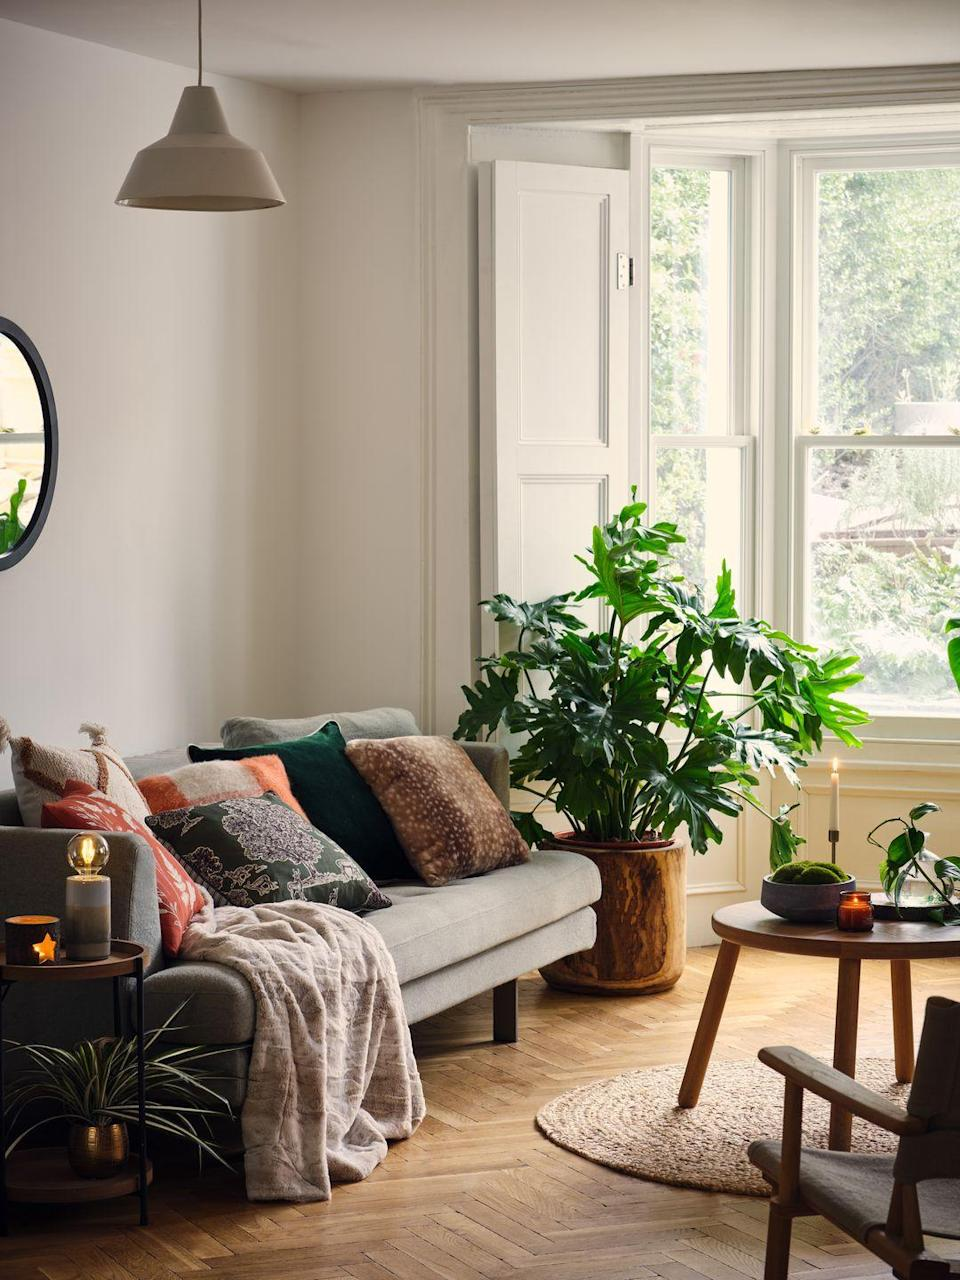 """<p>Centered around nature, the Forest Treasure trend is packed with roasted browns and bronze greens which combine natural textures with mid-century <a href=""""https://www.housebeautiful.com/uk/decorate/living-room/g32357518/living-room-accessories/"""" rel=""""nofollow noopener"""" target=""""_blank"""" data-ylk=""""slk:accessories"""" class=""""link rapid-noclick-resp"""">accessories</a>. Some of our favourites include the jute rug (£45), black round mirror (£20) and cosy checked cushion (£9). <br></p><p><a class=""""link rapid-noclick-resp"""" href=""""https://direct.asda.com/george/home/D26,default,sc.html"""" rel=""""nofollow noopener"""" target=""""_blank"""" data-ylk=""""slk:SHOP NOW"""">SHOP NOW</a></p>"""